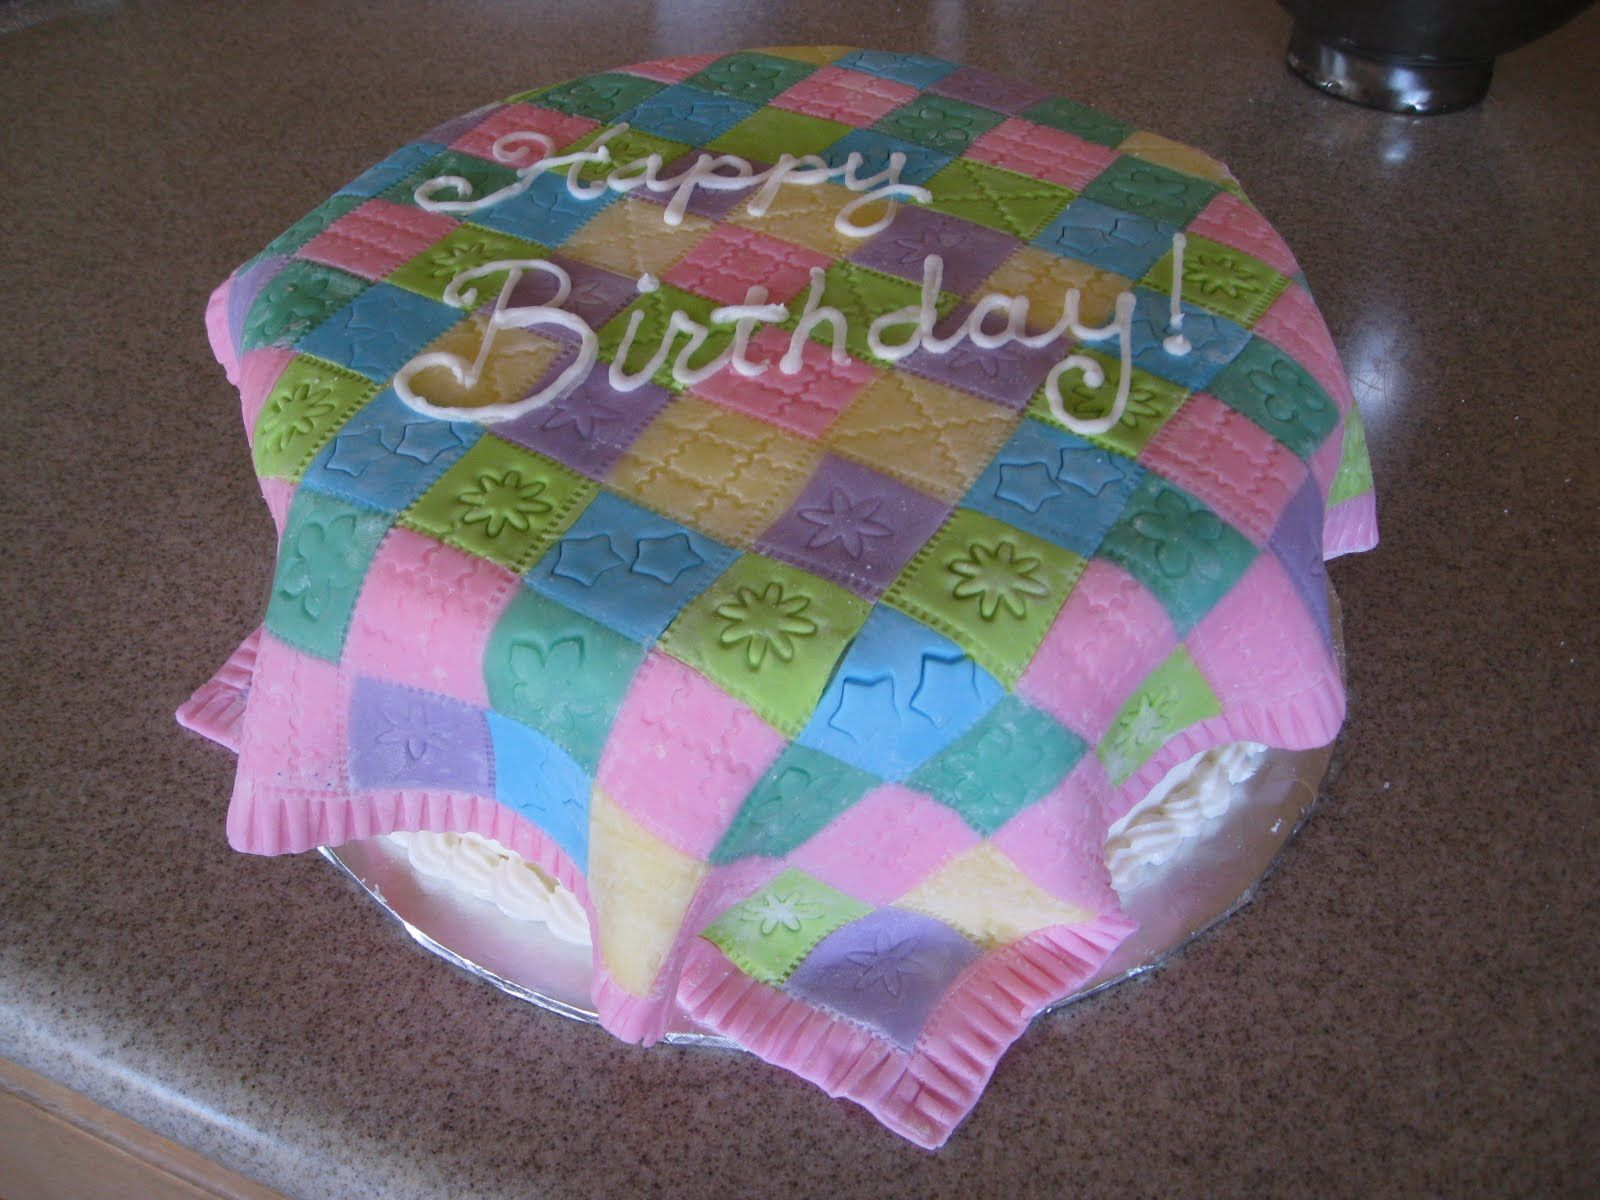 Cake Decorating Quilt Design : Quilt Themed Cakes birthday cake for members of a quilt ...